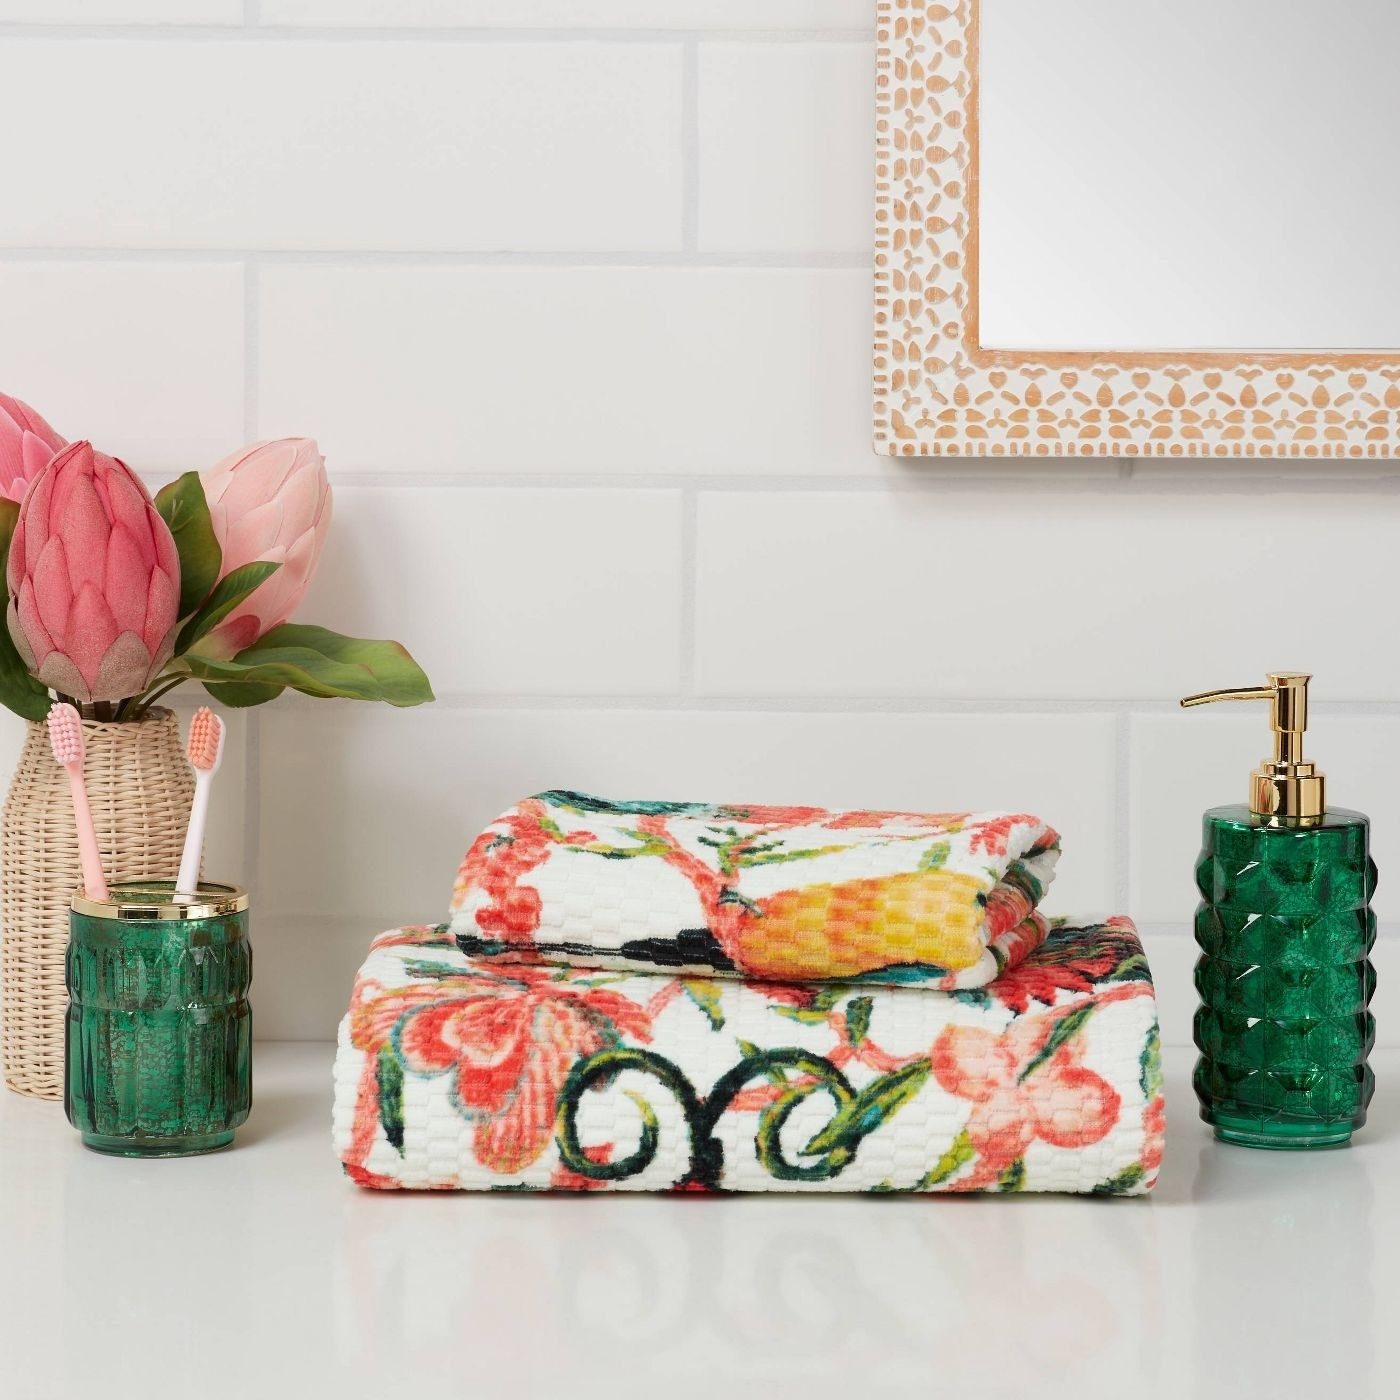 The colorful bird floral towels beside green accessories and a white backsplash